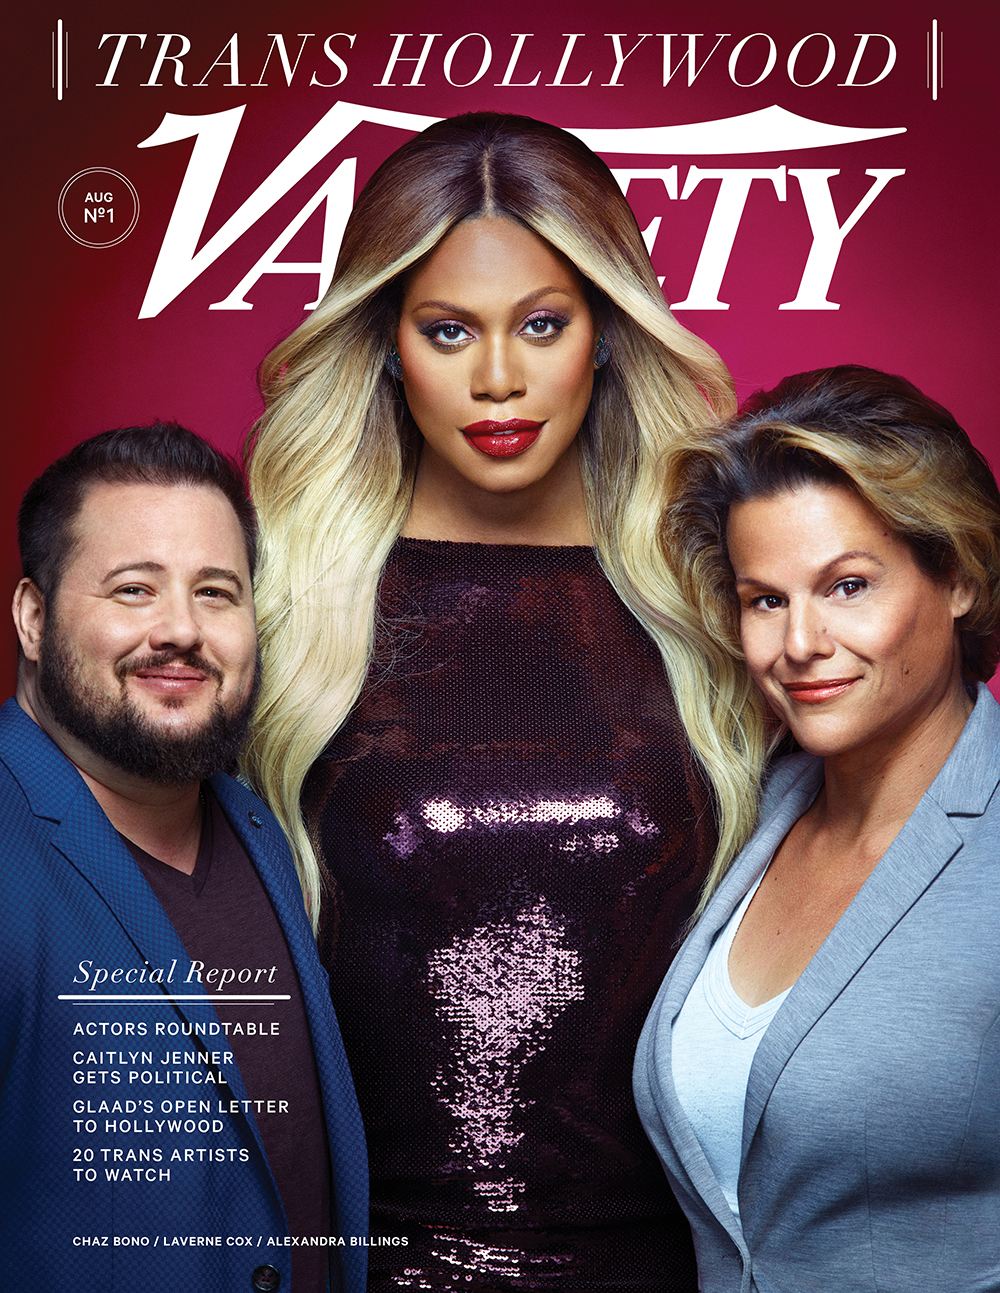 variety-trans-hollywood-cover.jpg